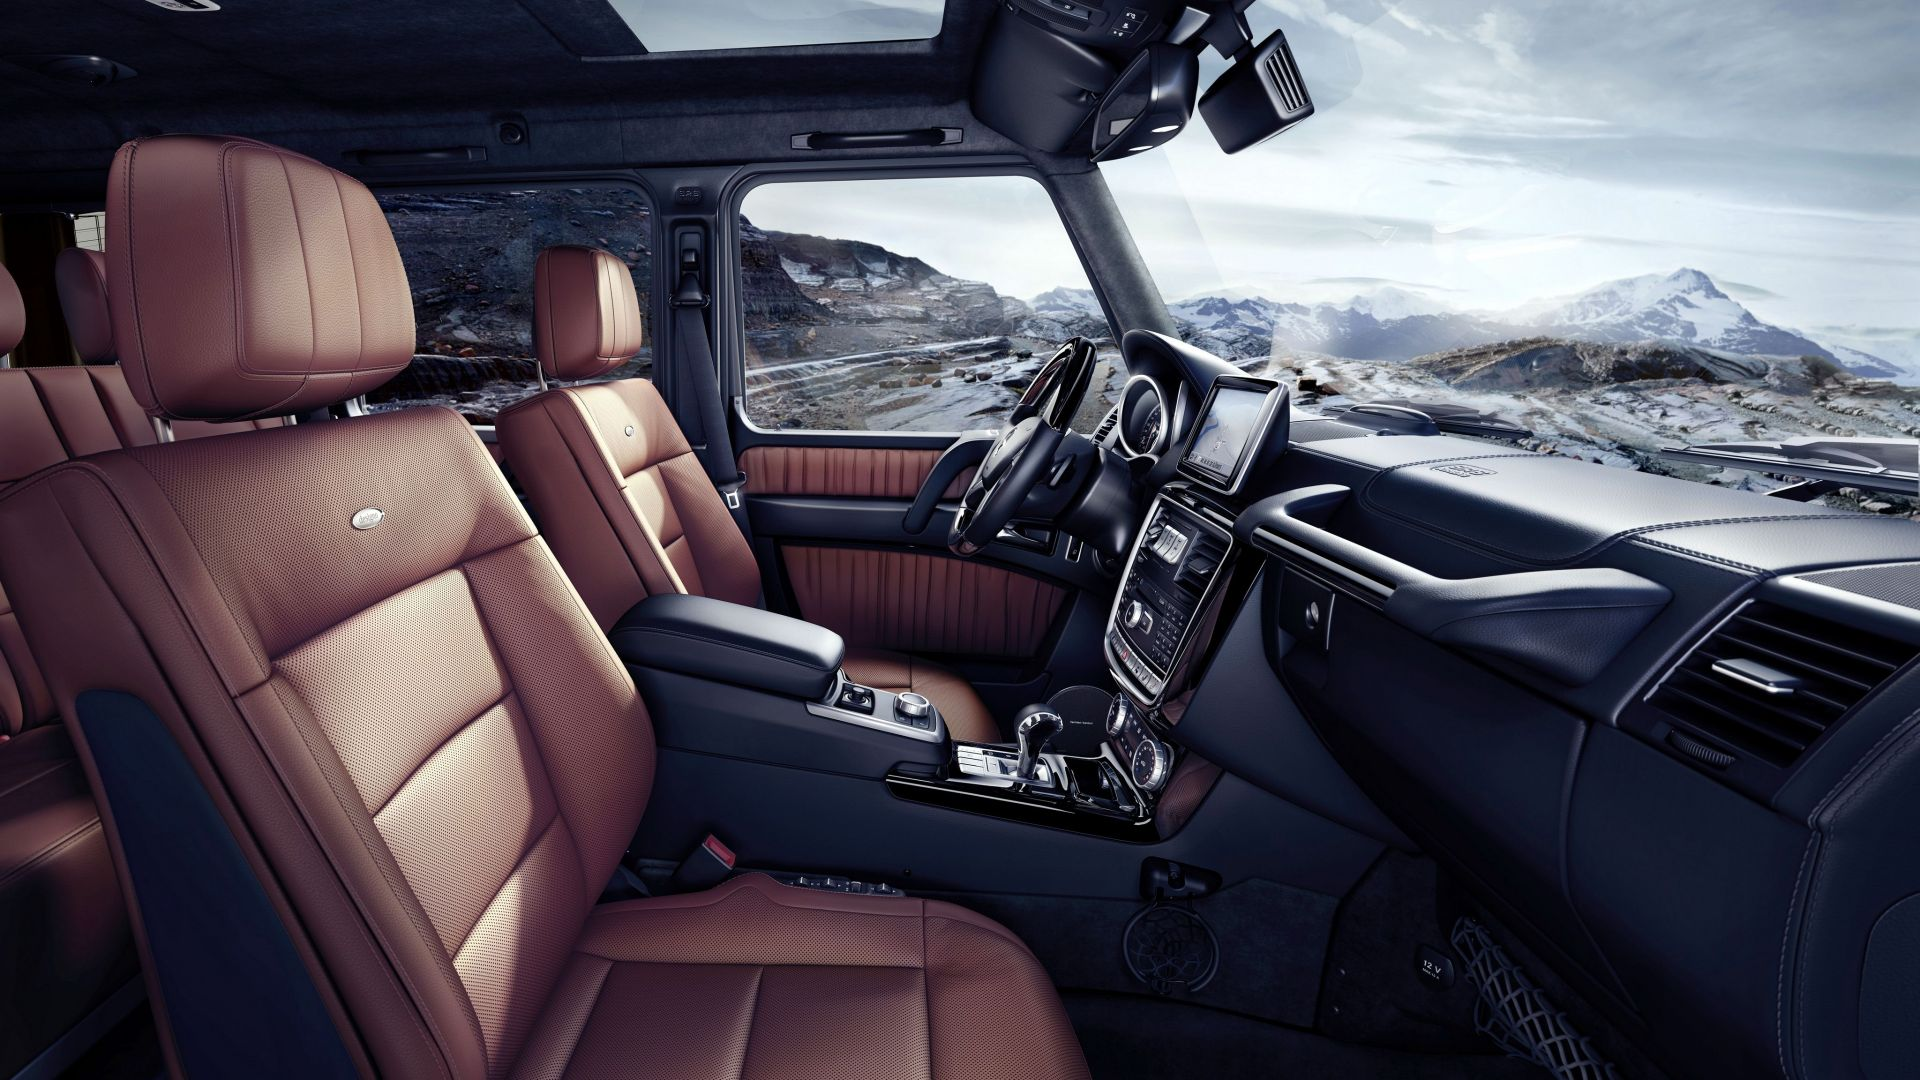 Mercedes-Benz G 500, SUV, Mercedes, G-Class, off-road, interior, luxury cars (horizontal)